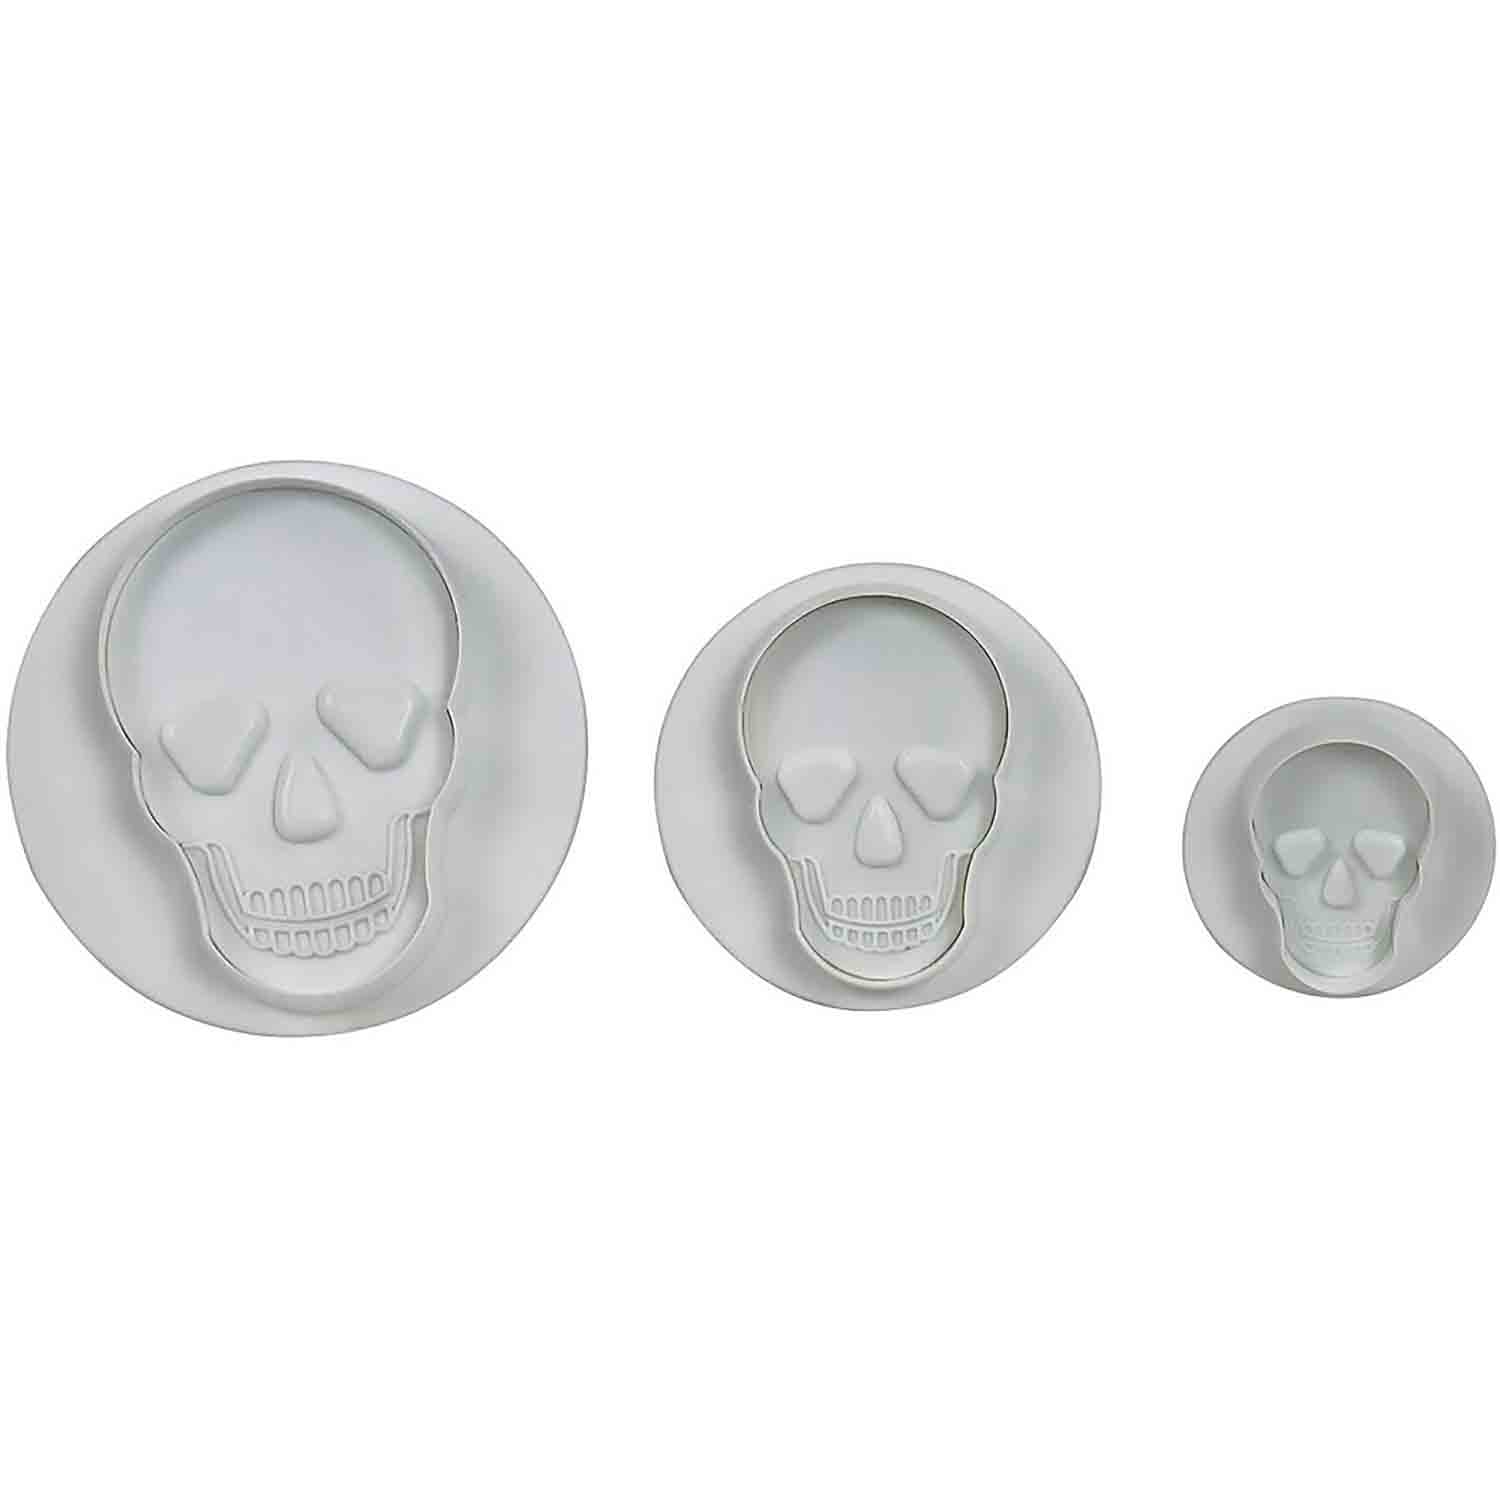 Skull Plunger Cutters Set